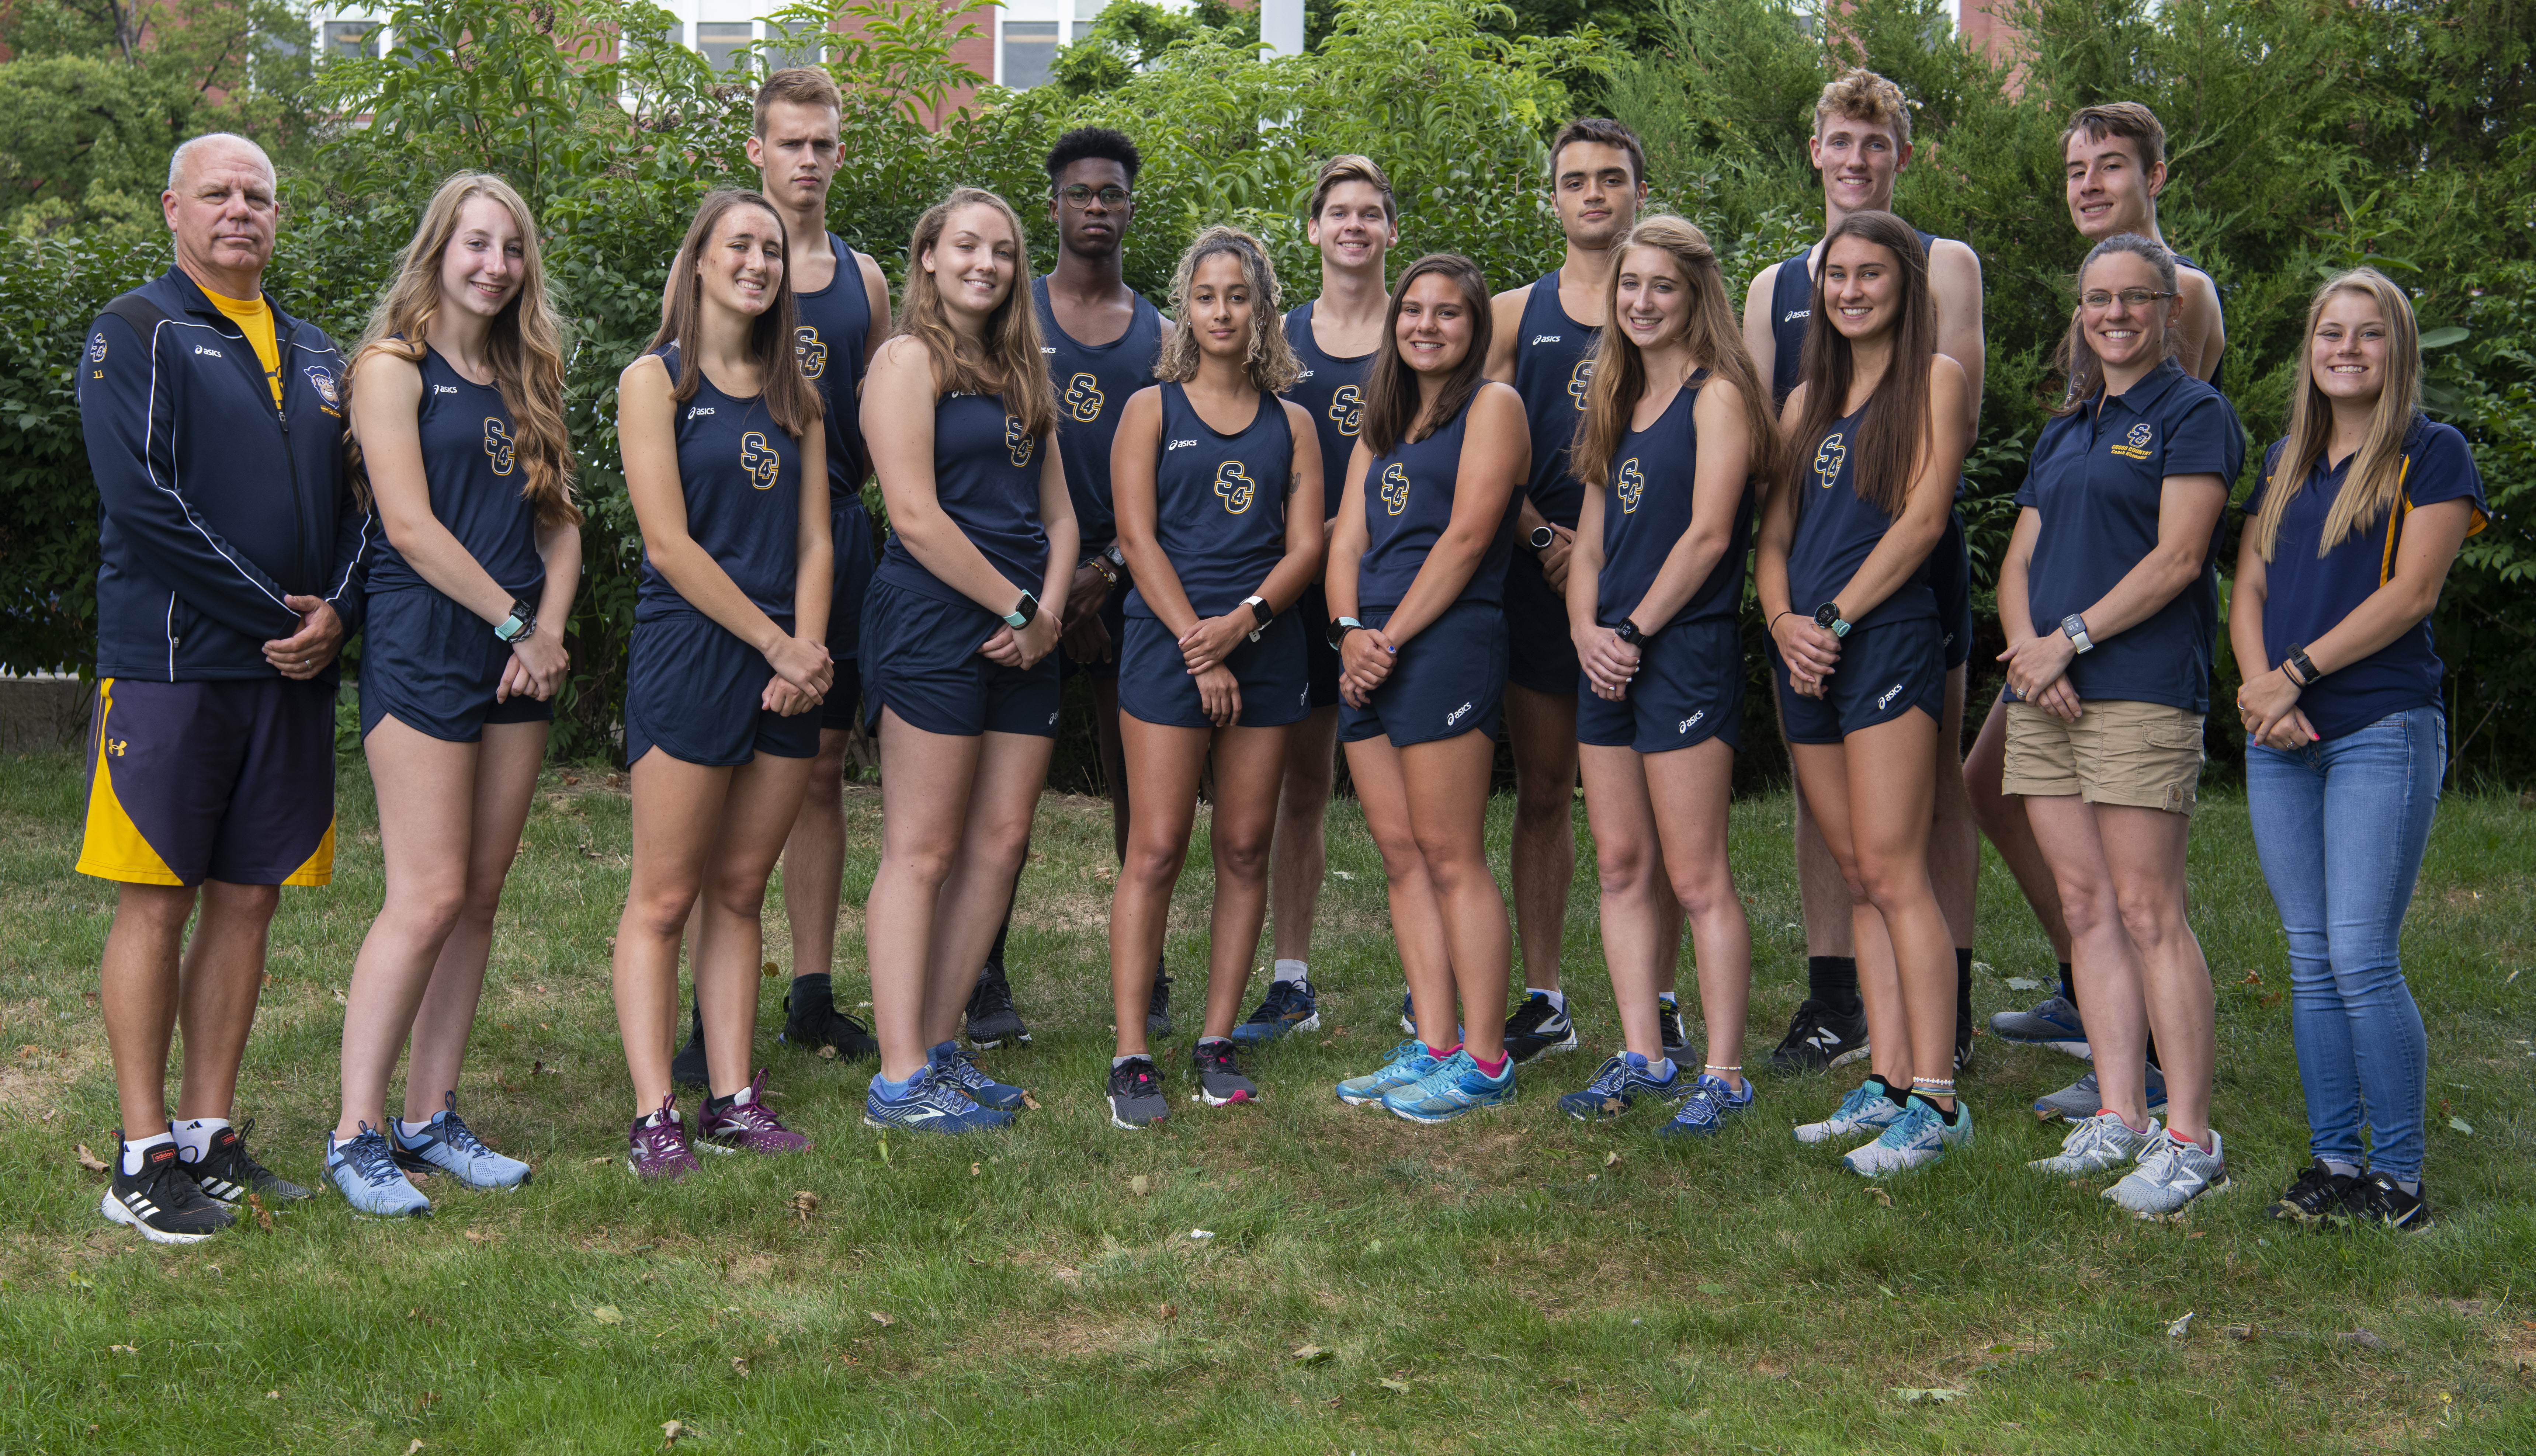 SC4 fall 2019 men's and women's cross country teams pose for a photo together.